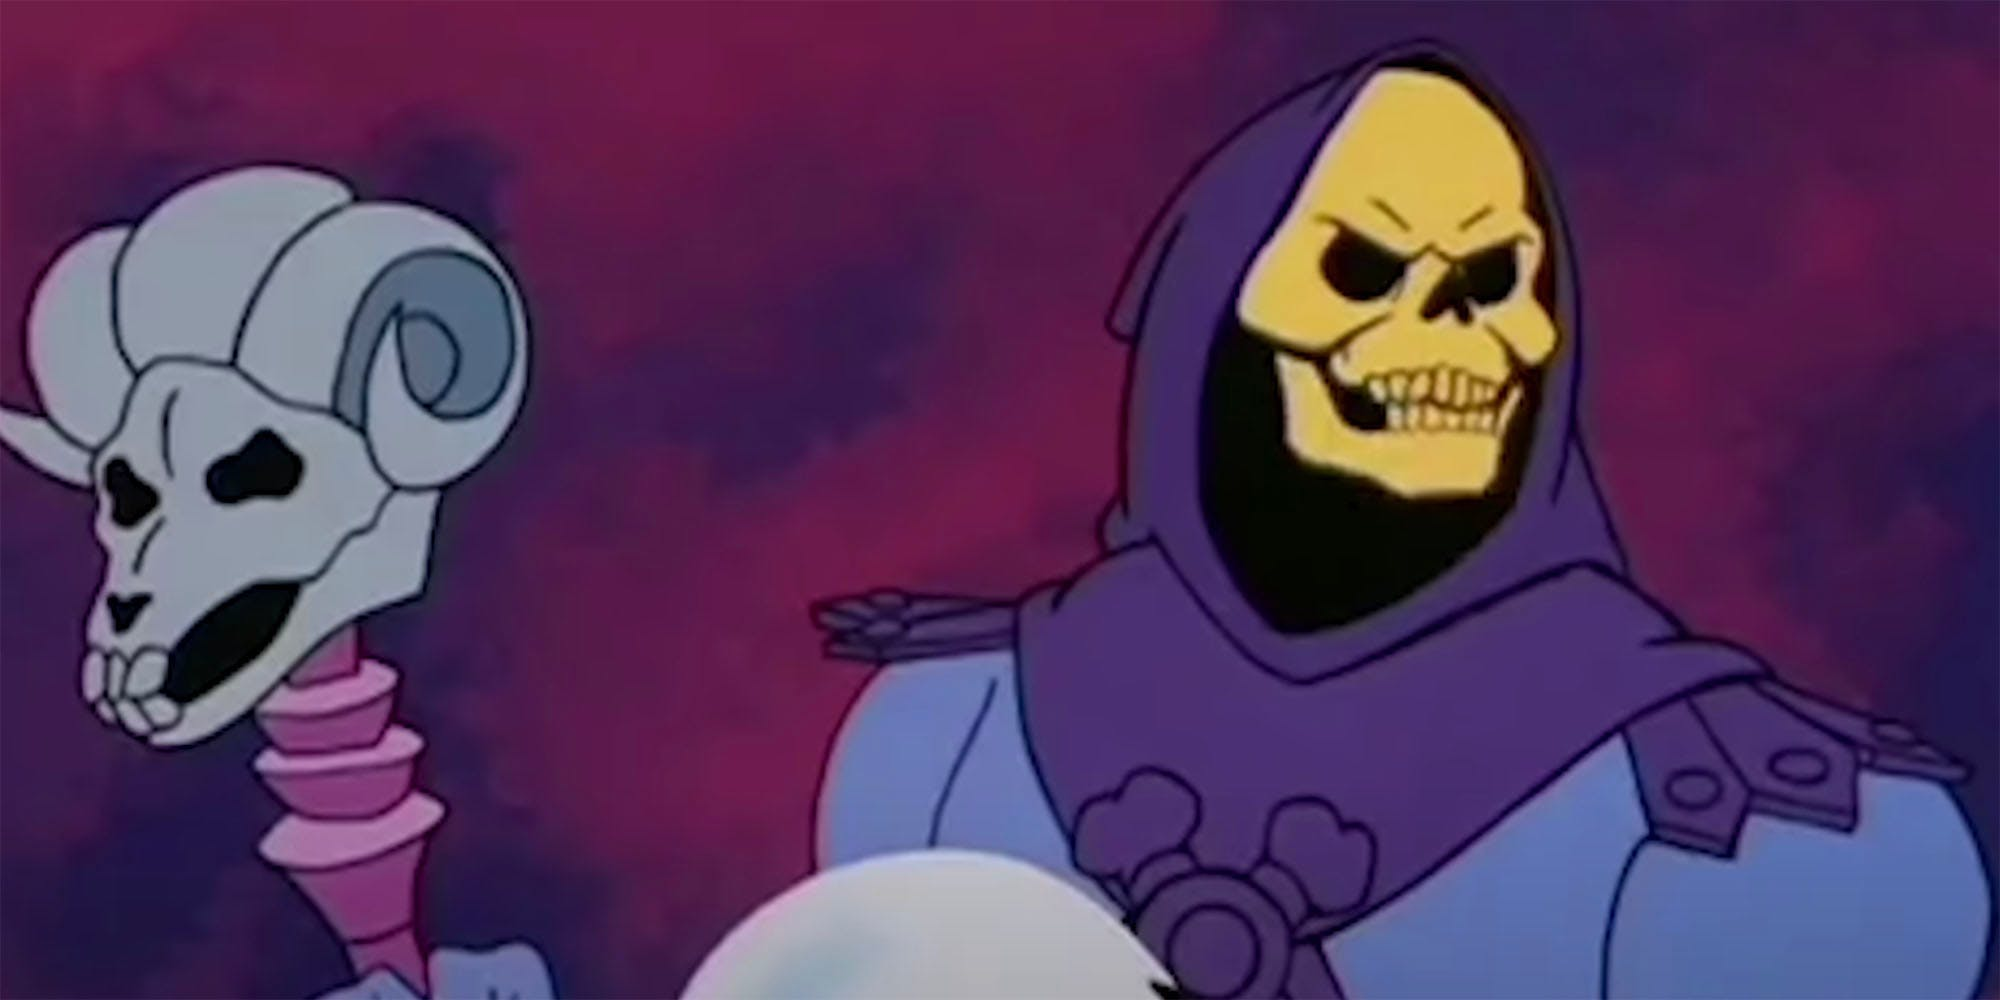 Skeletor from He-Man and Masters of the Universe